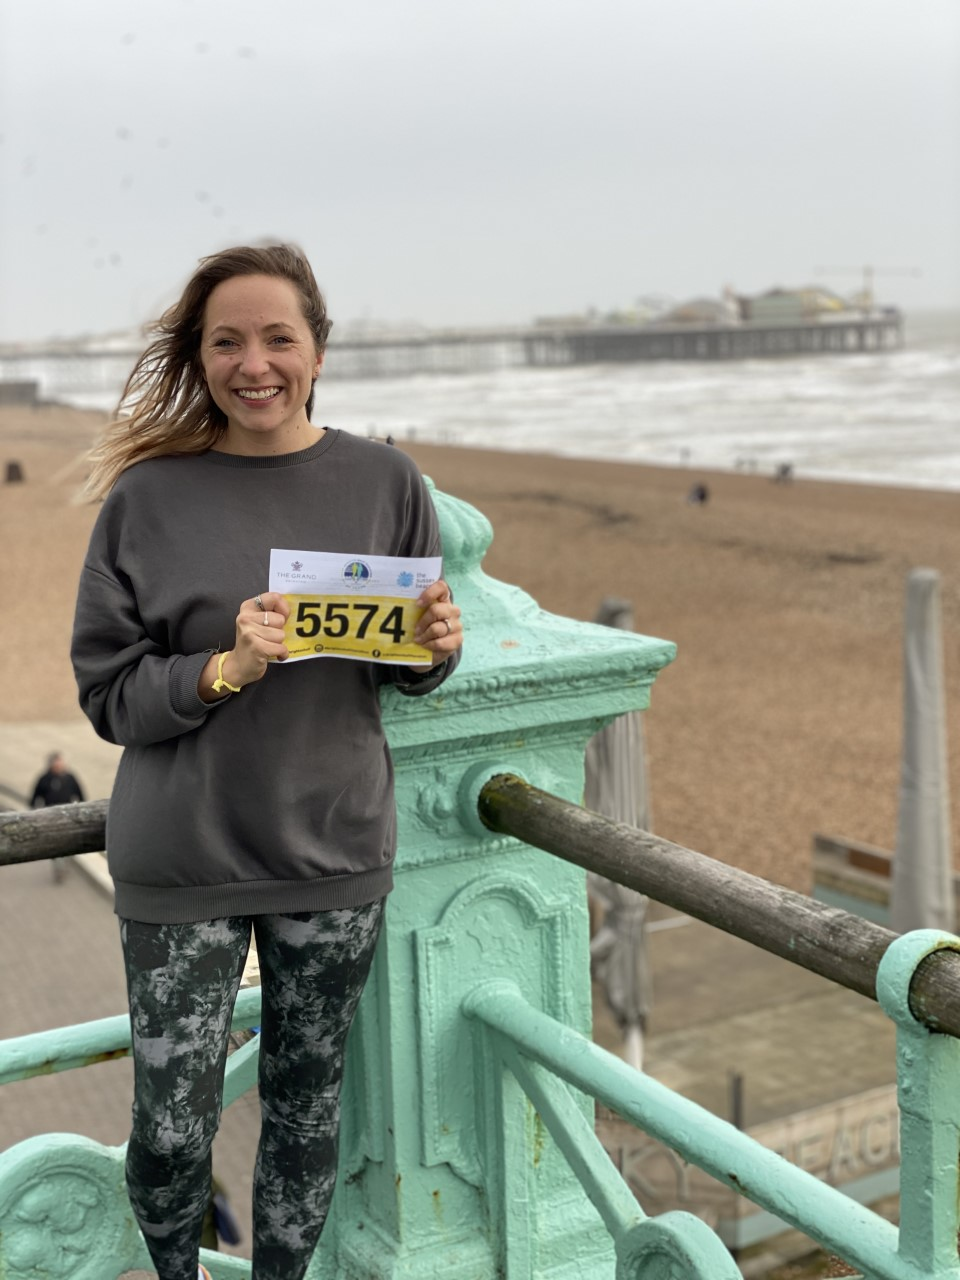 Brighton half marathon review